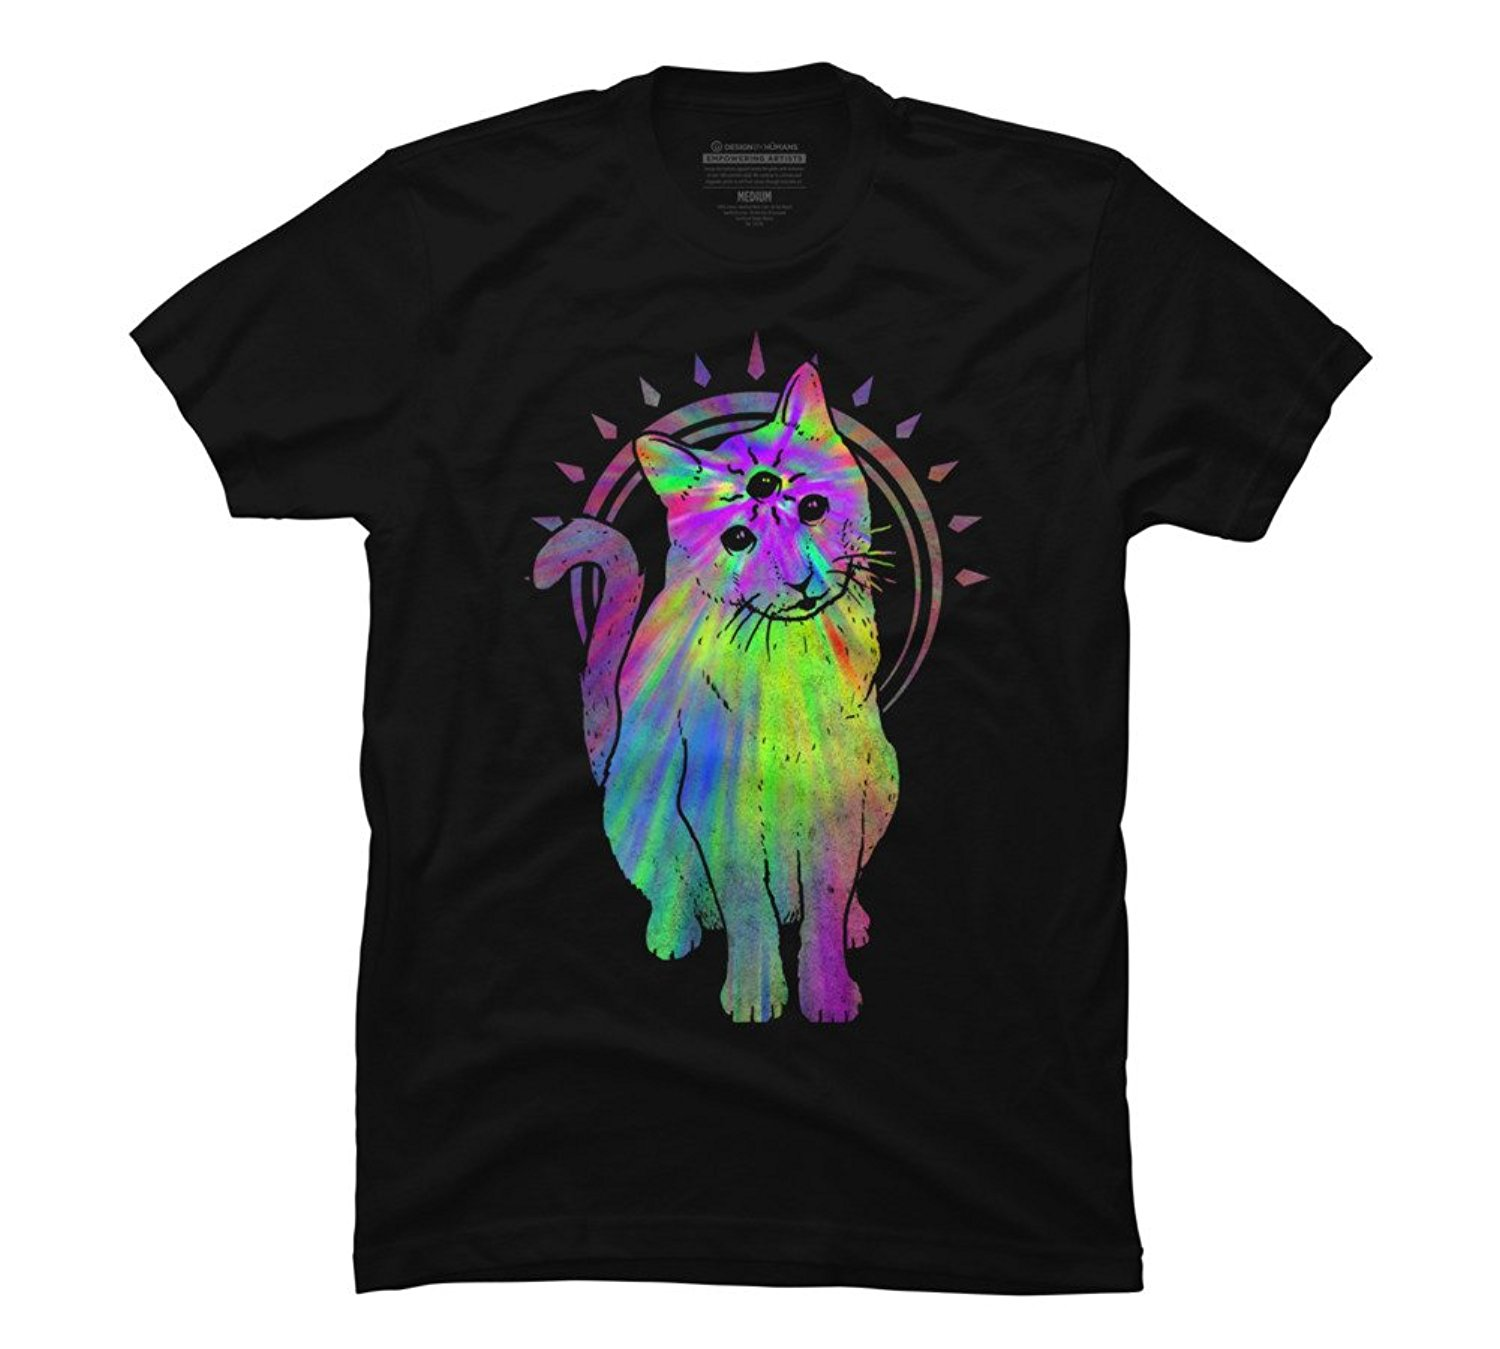 2018 Summer Men Tee Shirt Psychic psychedelic trippy cat Men's Graphic T Shirt - Design By Humans Custom Made T-shirt